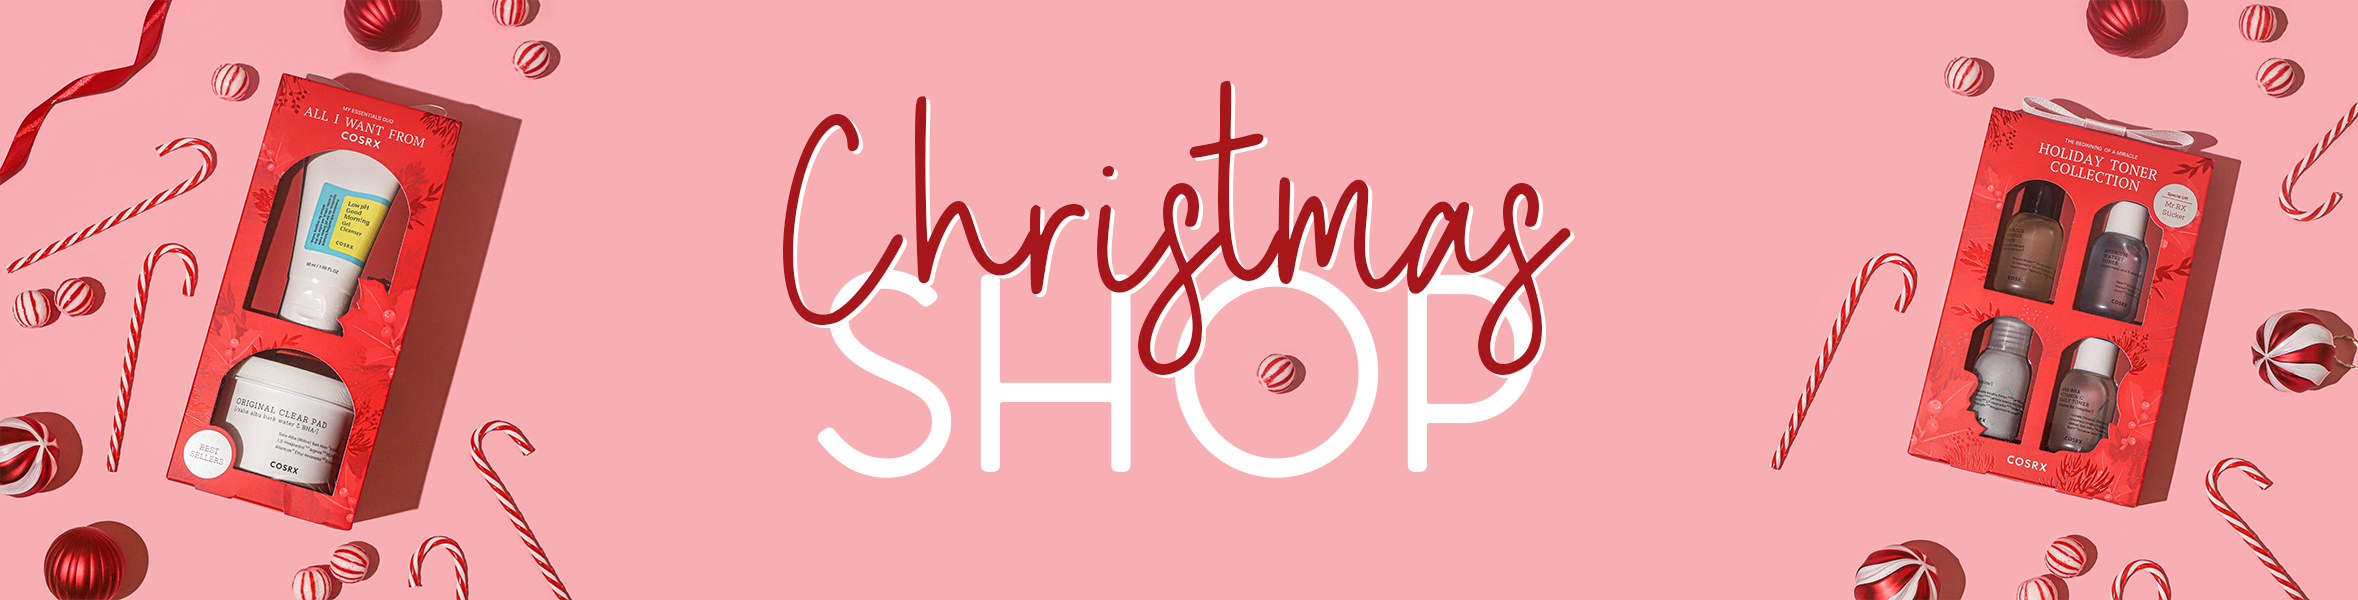 CHRISTMAS SHOP collection banner image